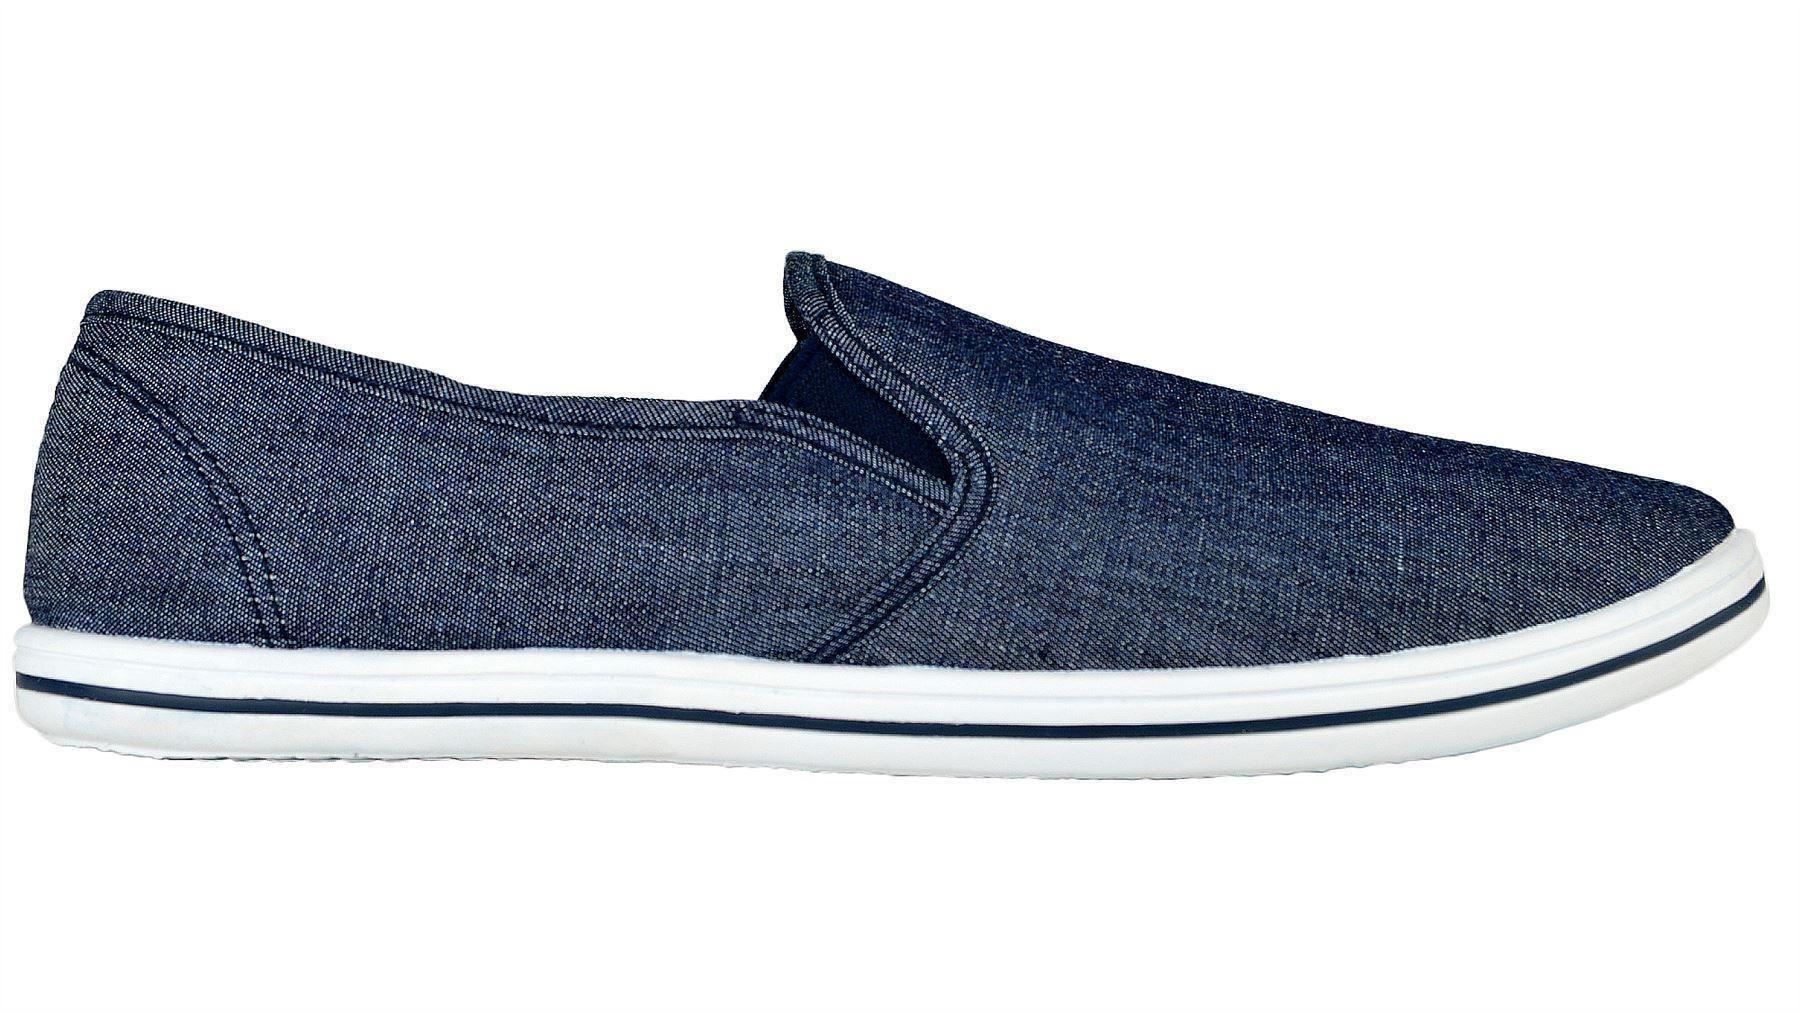 mens new casual plain canvas slip on plimsolls deck boat